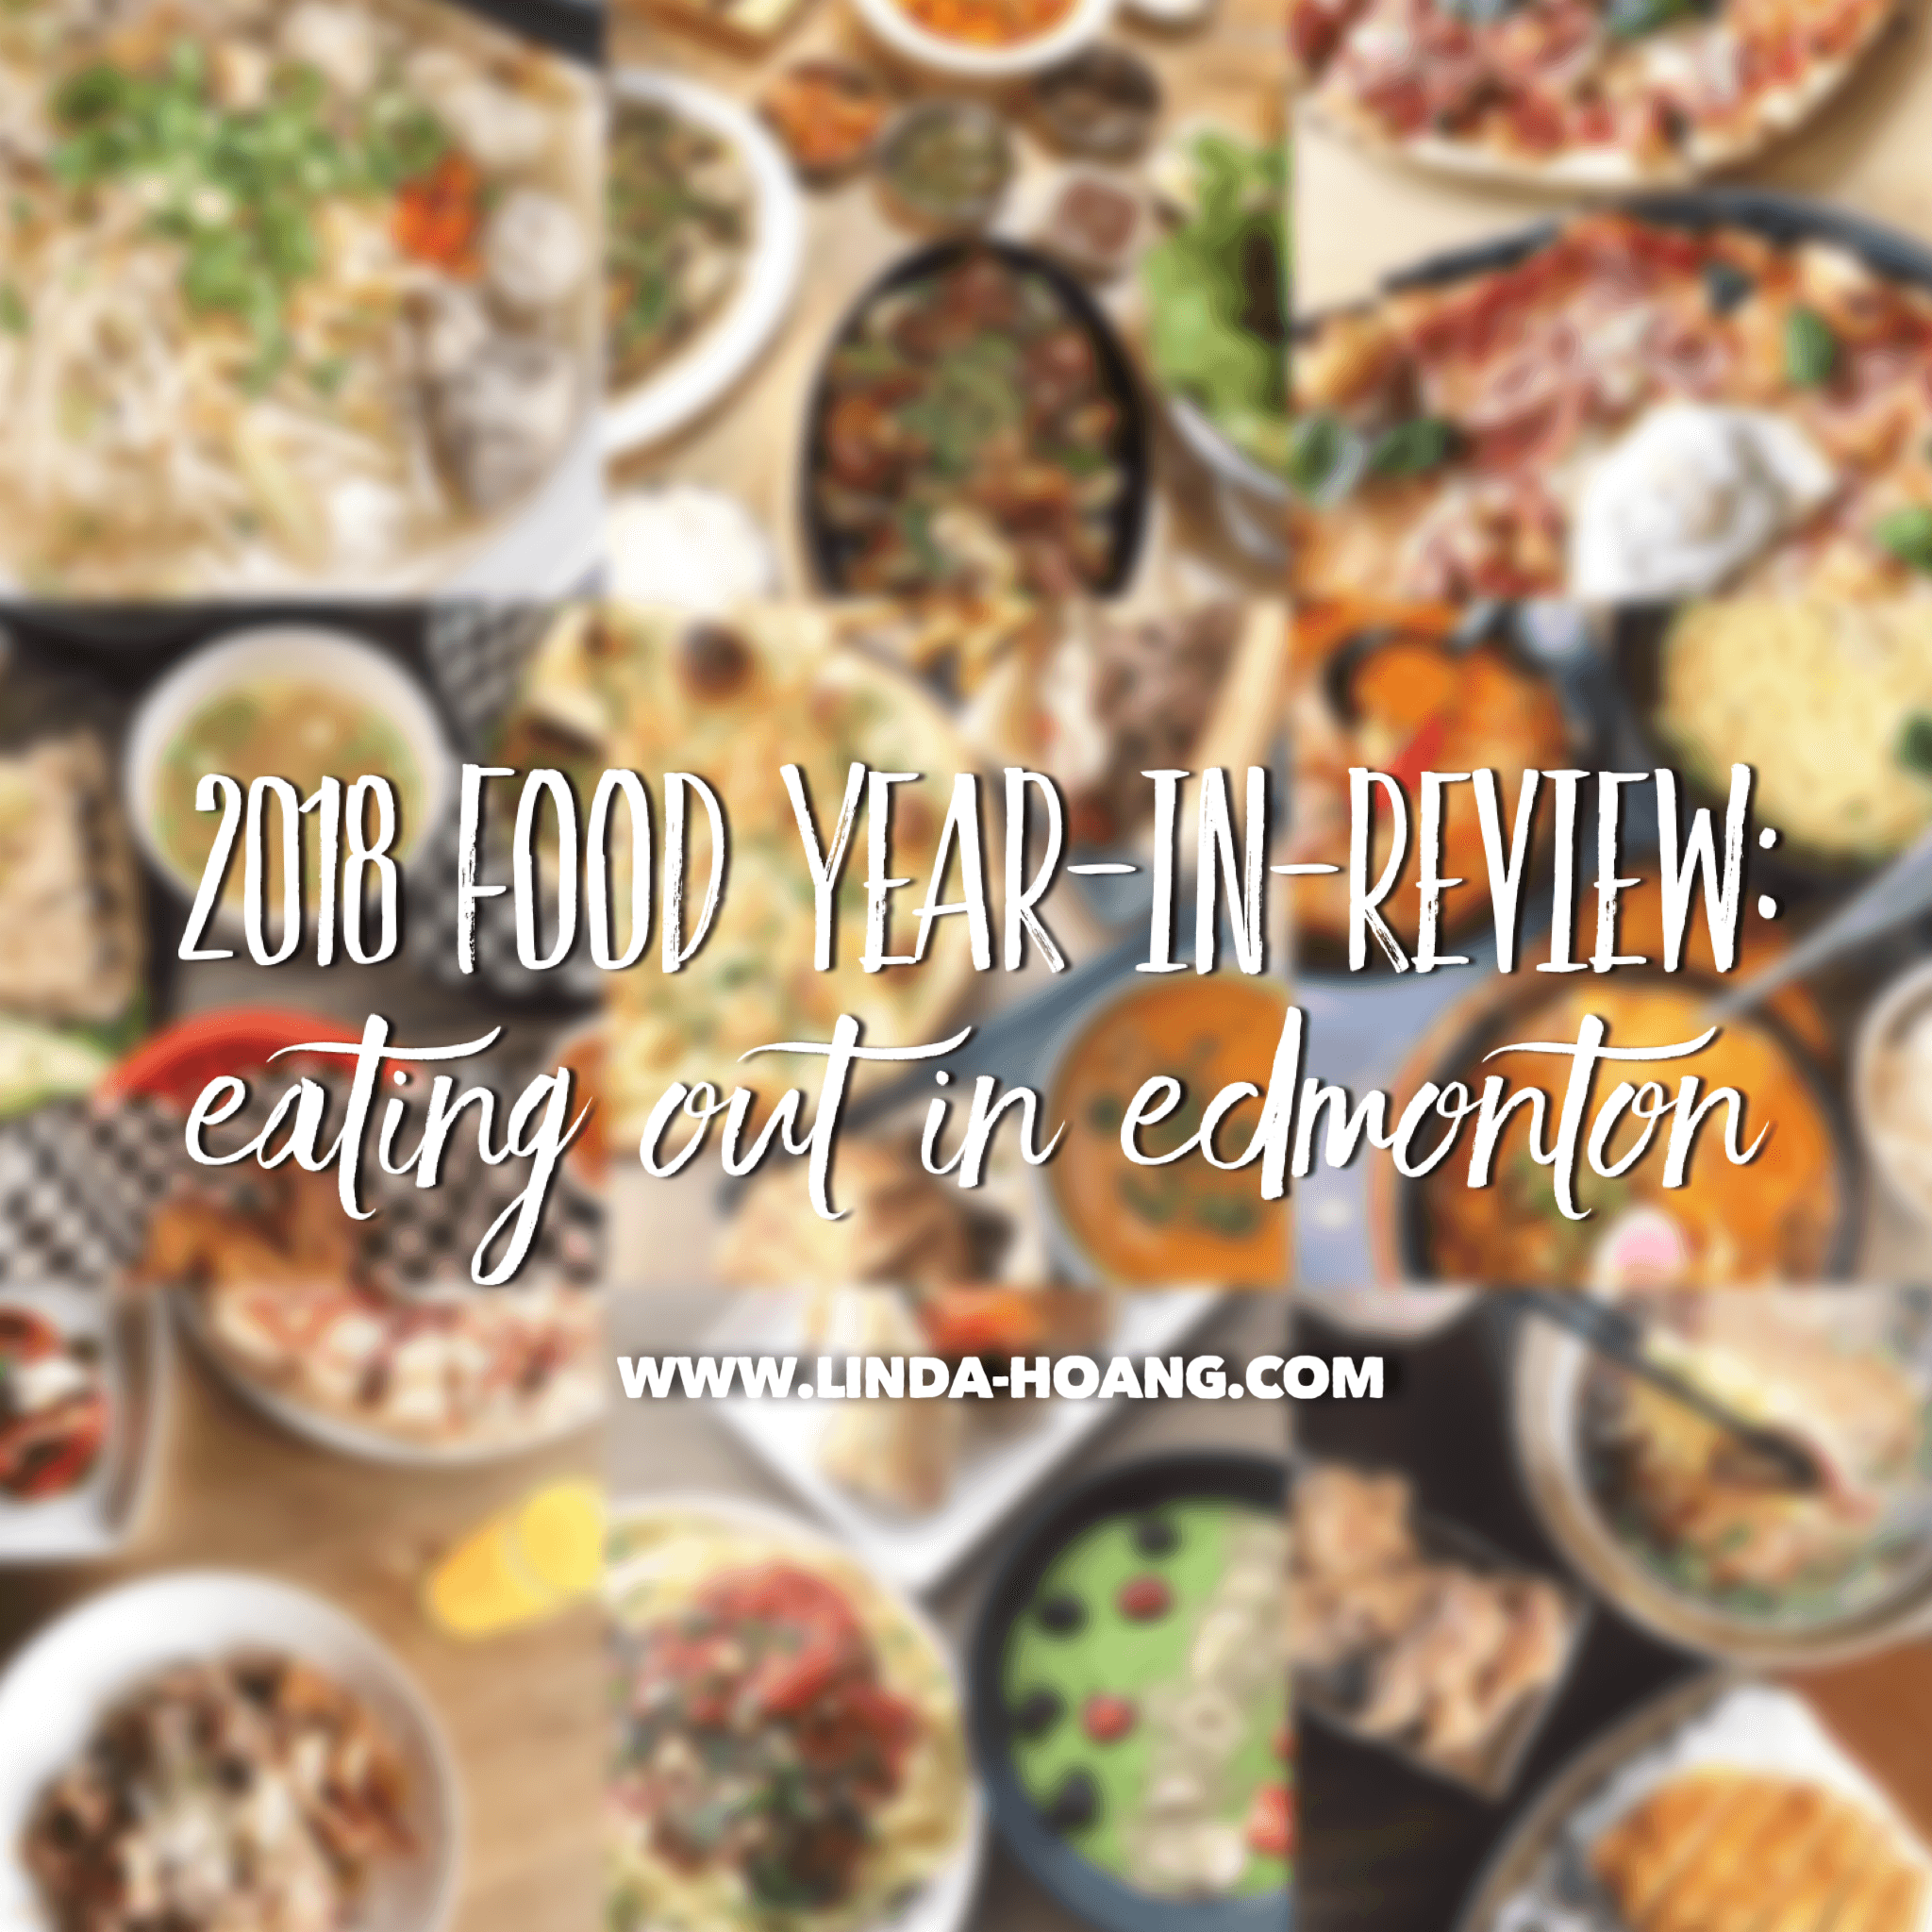 2018 Food Year in Review Explore Edmonton Restaurants Eating Out